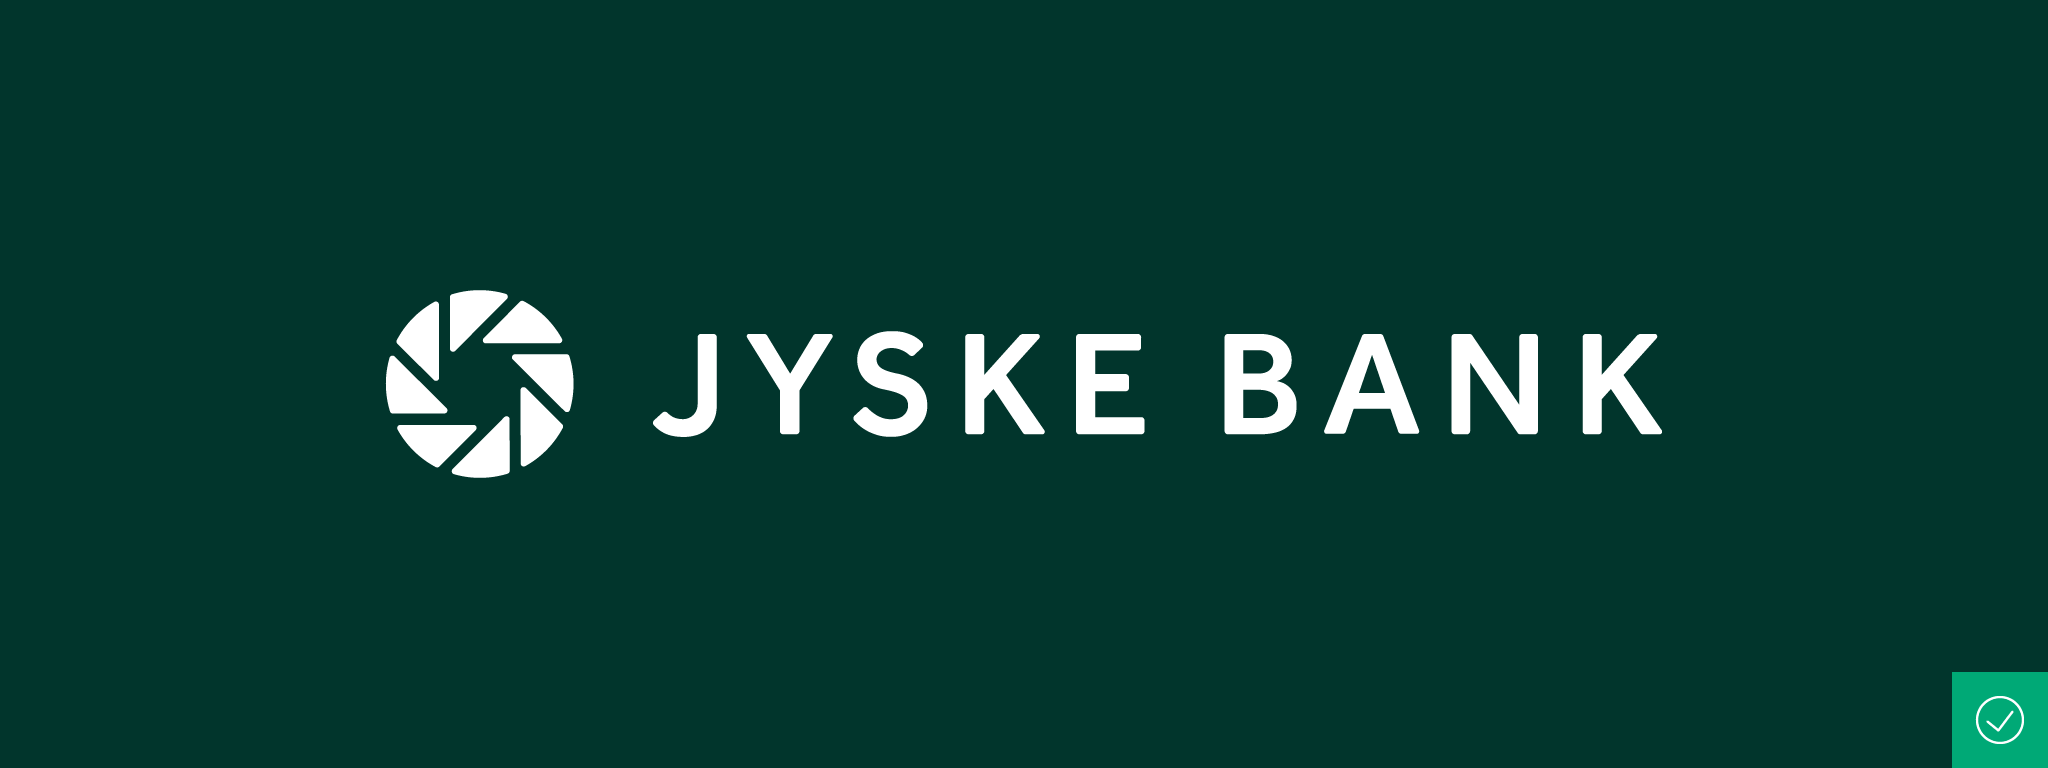 Logo - Jyske Banks logo, do's and dont's